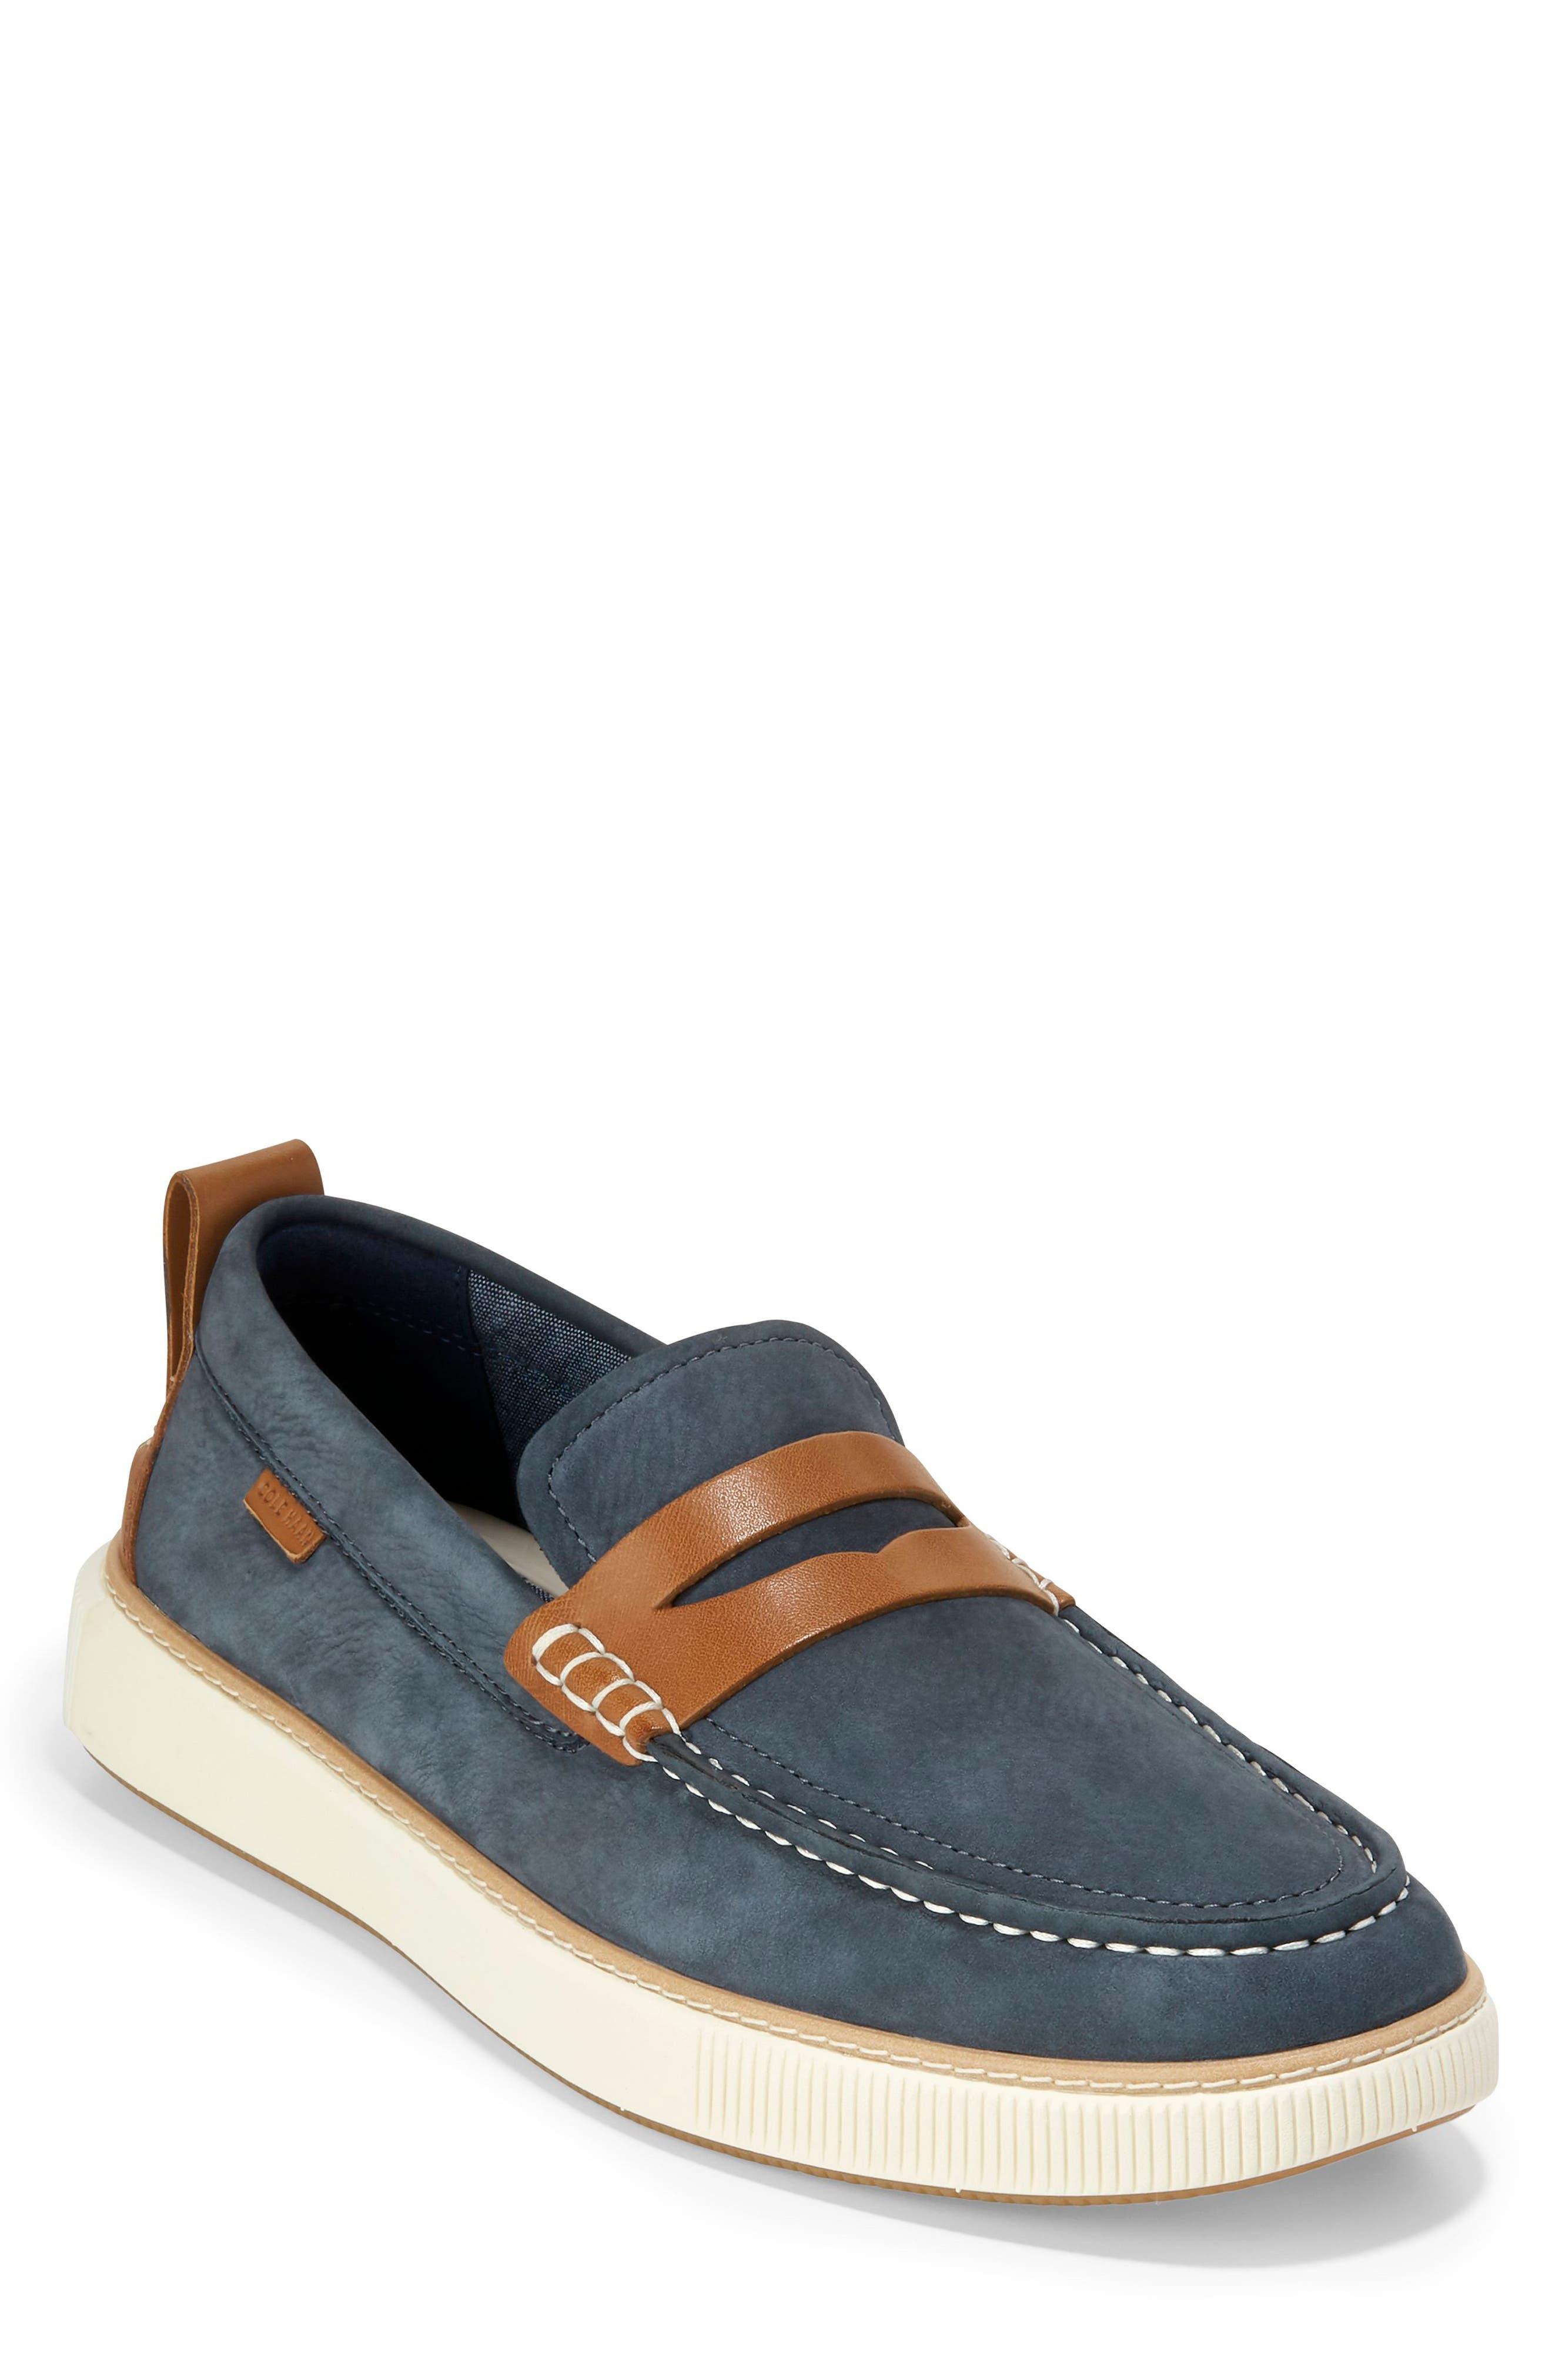 Cloudfeel Penny Loafer